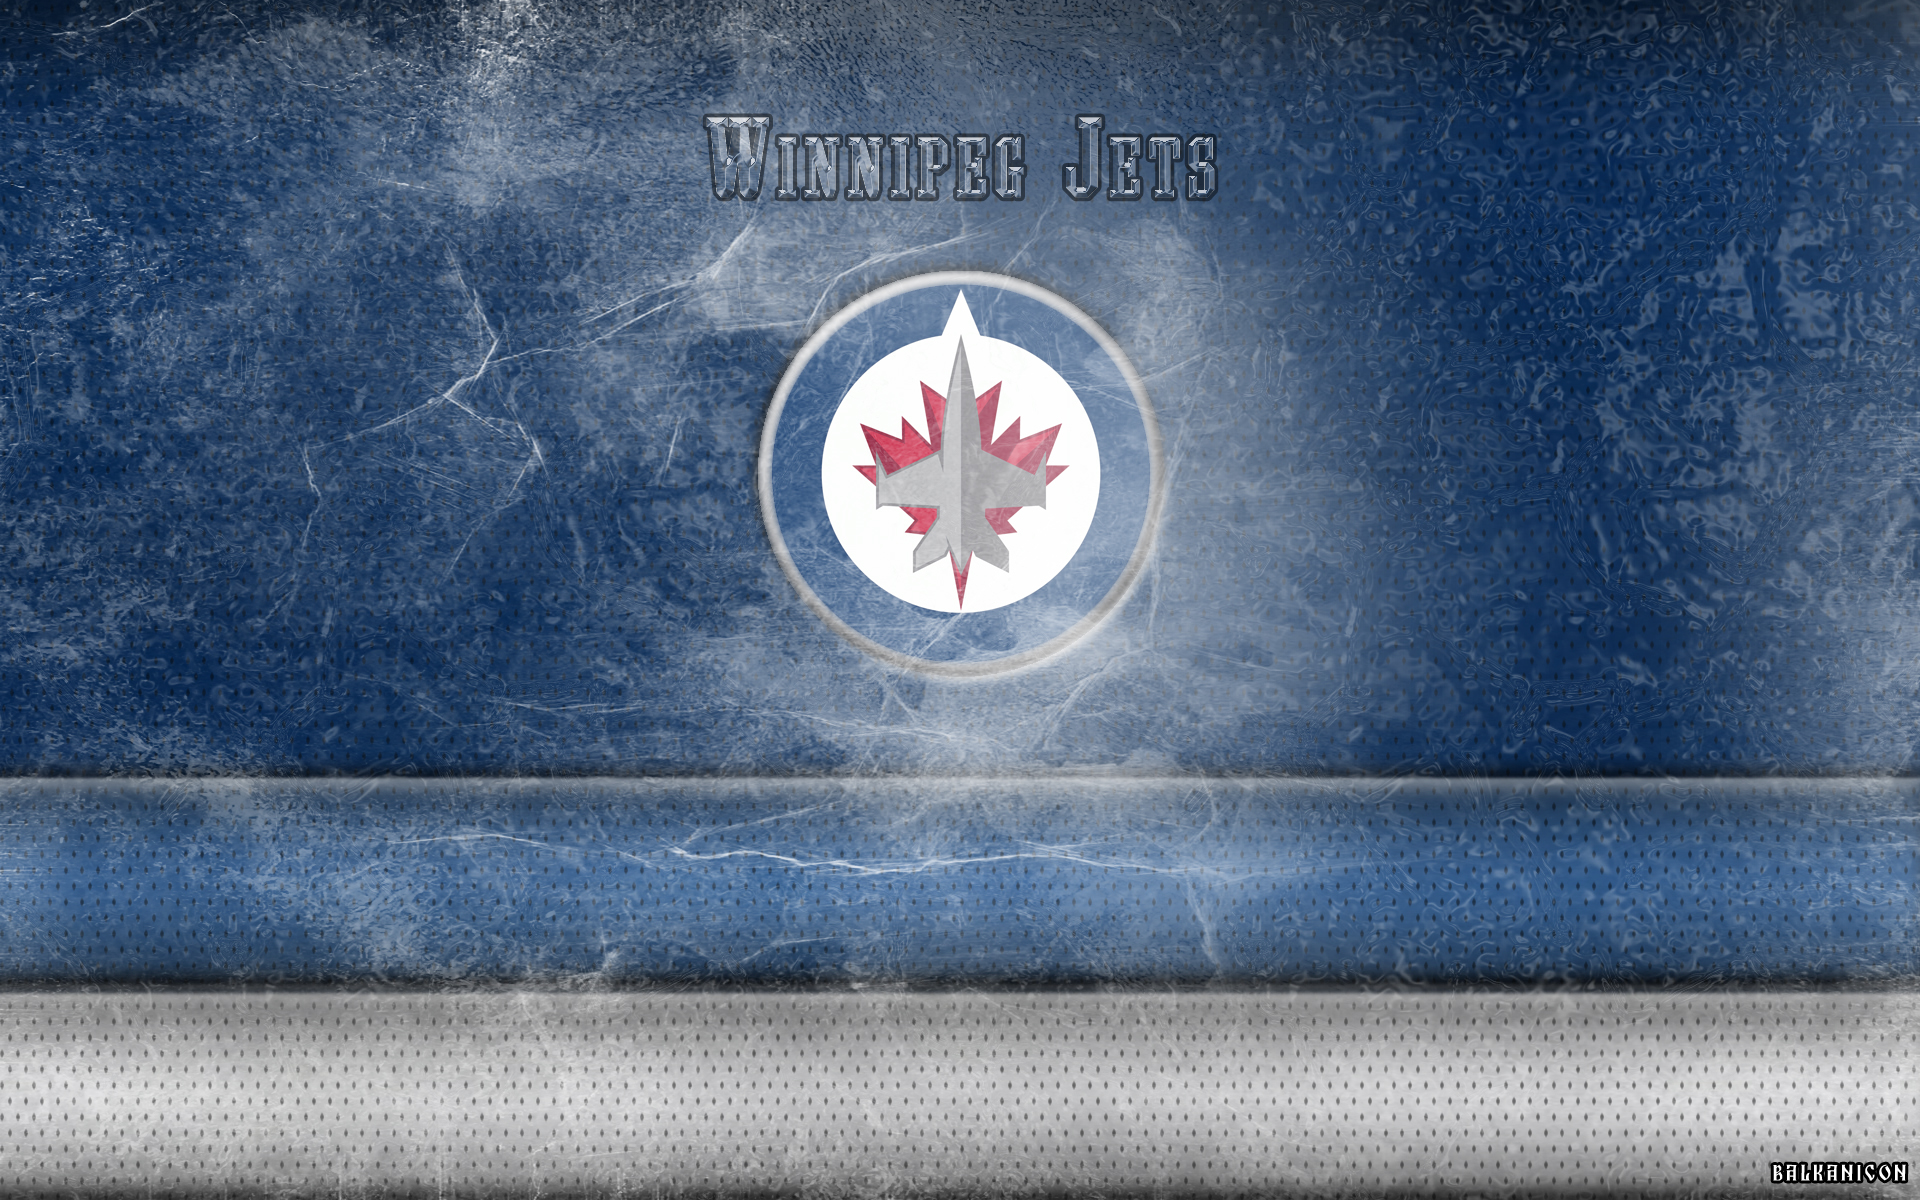 Winnipeg Jets wallpaper by Balkanicon 1920x1200